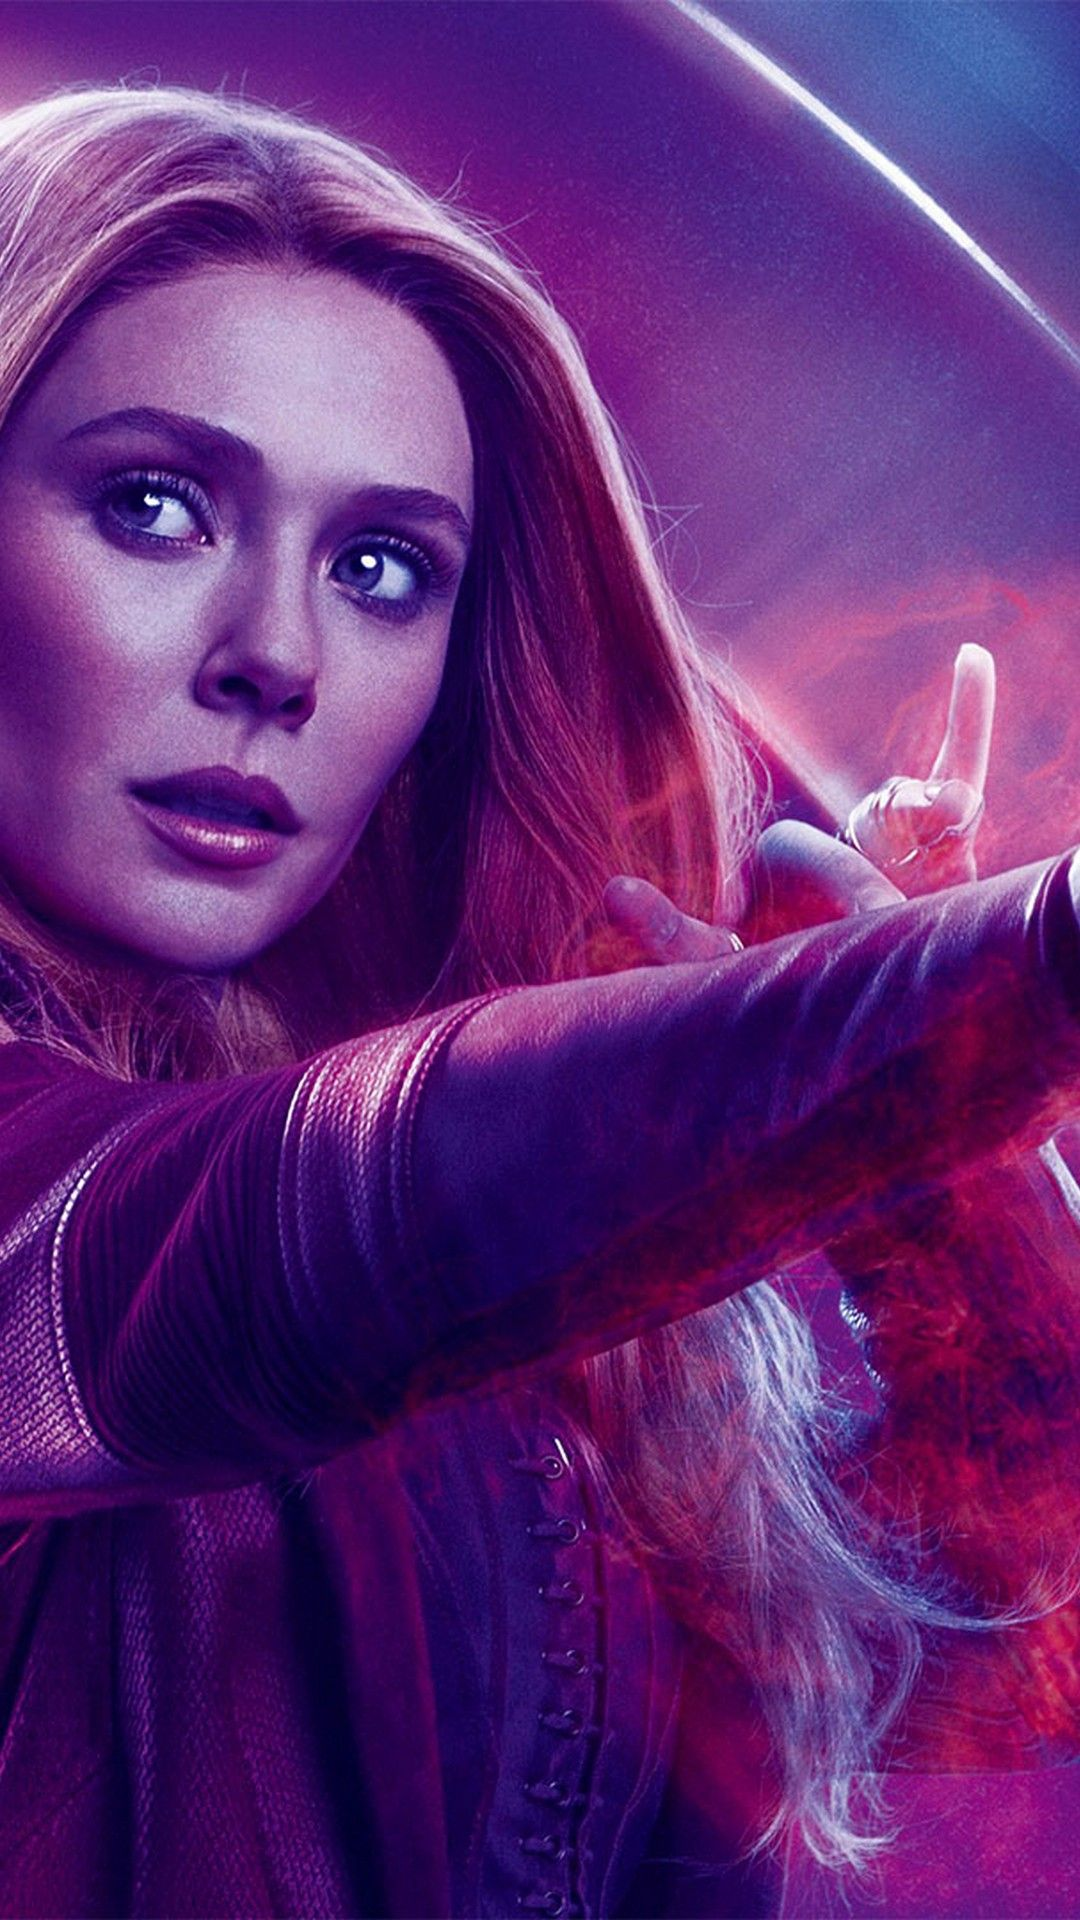 Scarlet Witch Avengers Endgame Iphone Wallpaper Best Movie Poster Wallpaper Hd Scarlet Witch Avengers Witch Wallpaper Scarlet Witch